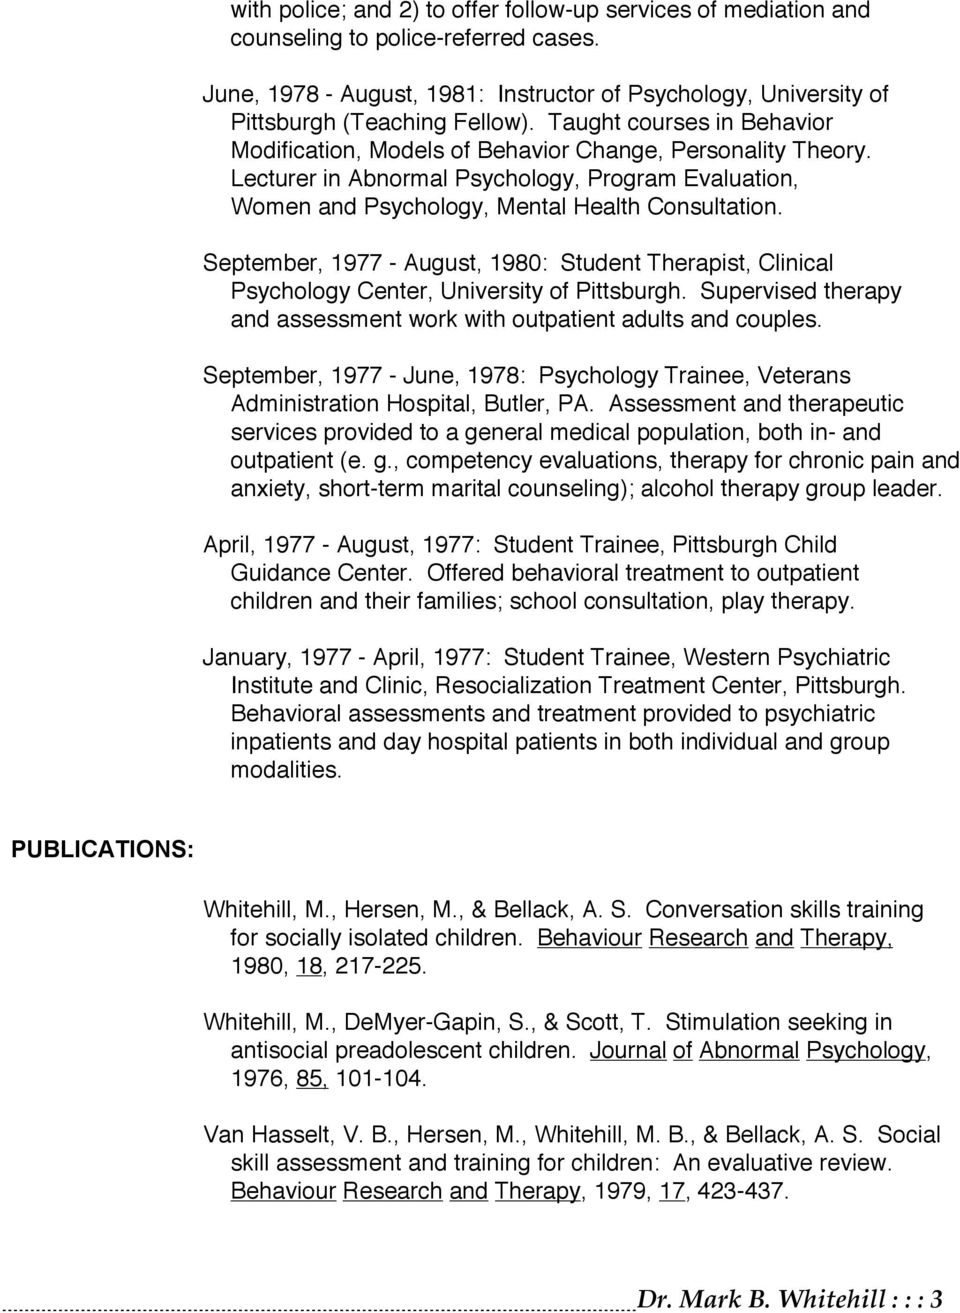 mark b whitehill ph d clinical forensic psychology inc 1977 1980 student therapist clinical psychology center university